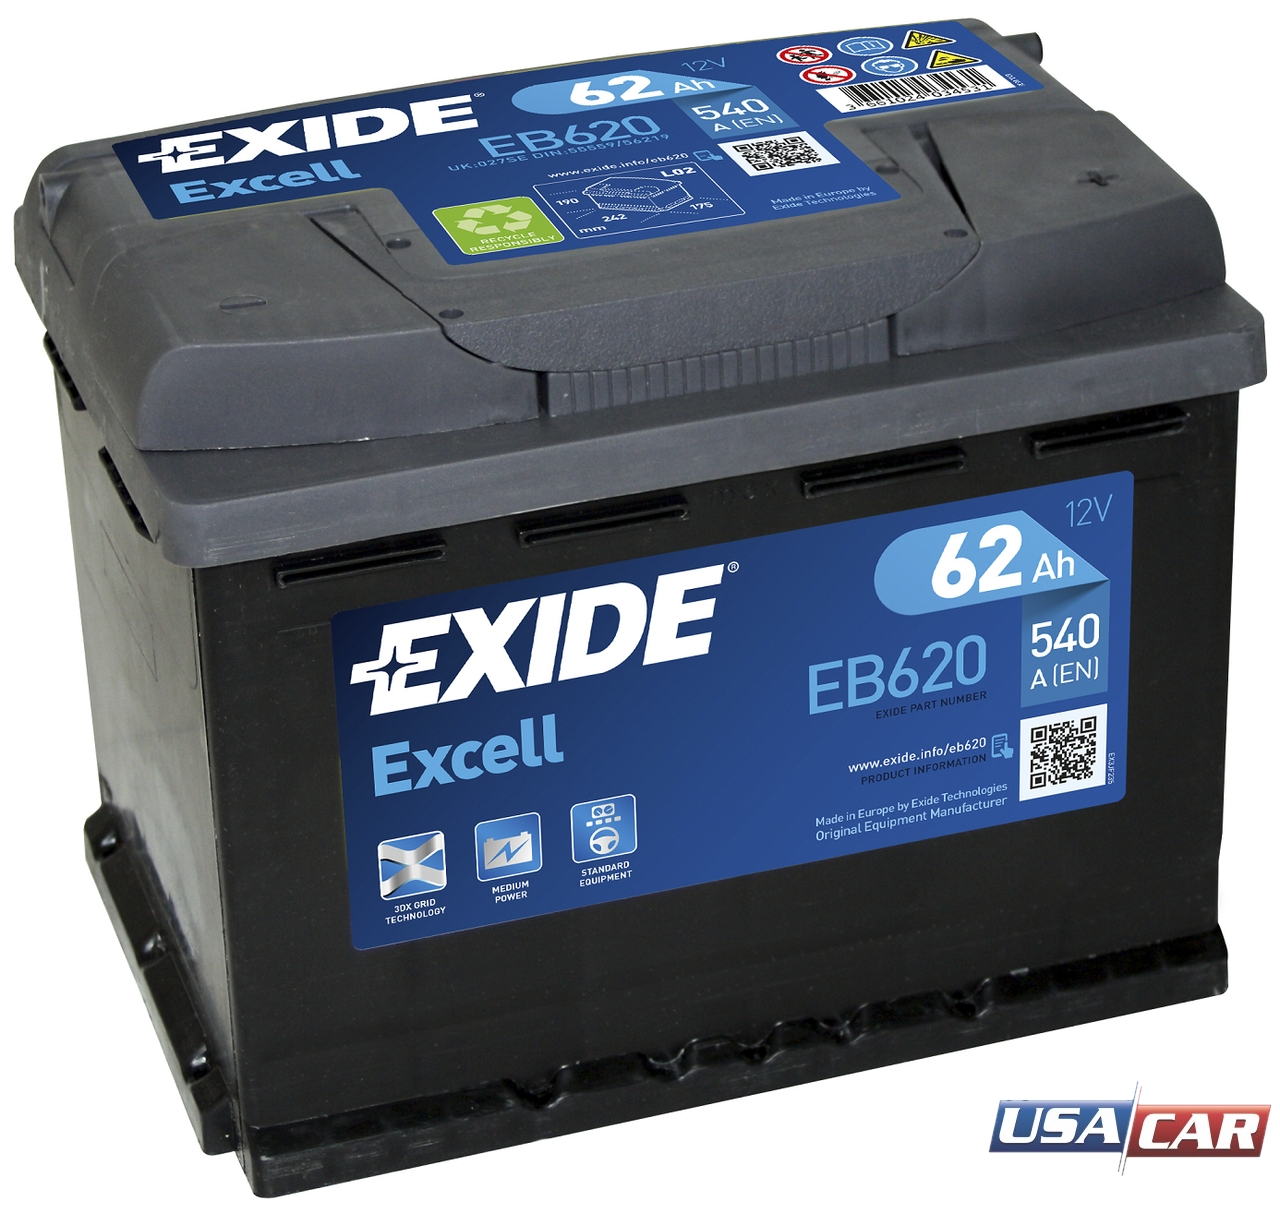 EXIDE Excell 62Ah EB620